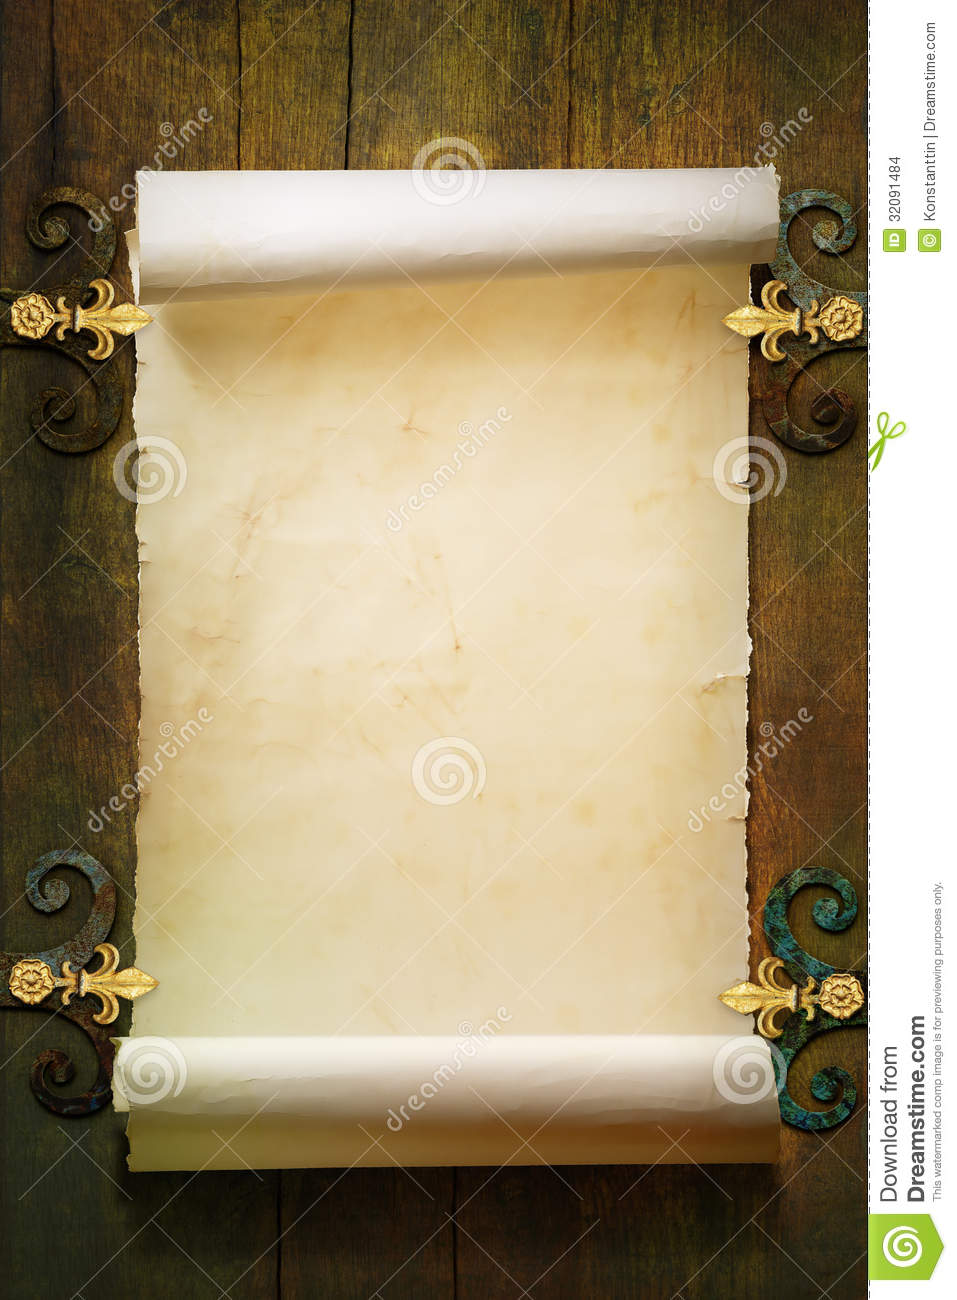 scroll old paper background stock photo 32091484 - megapixl, Powerpoint templates